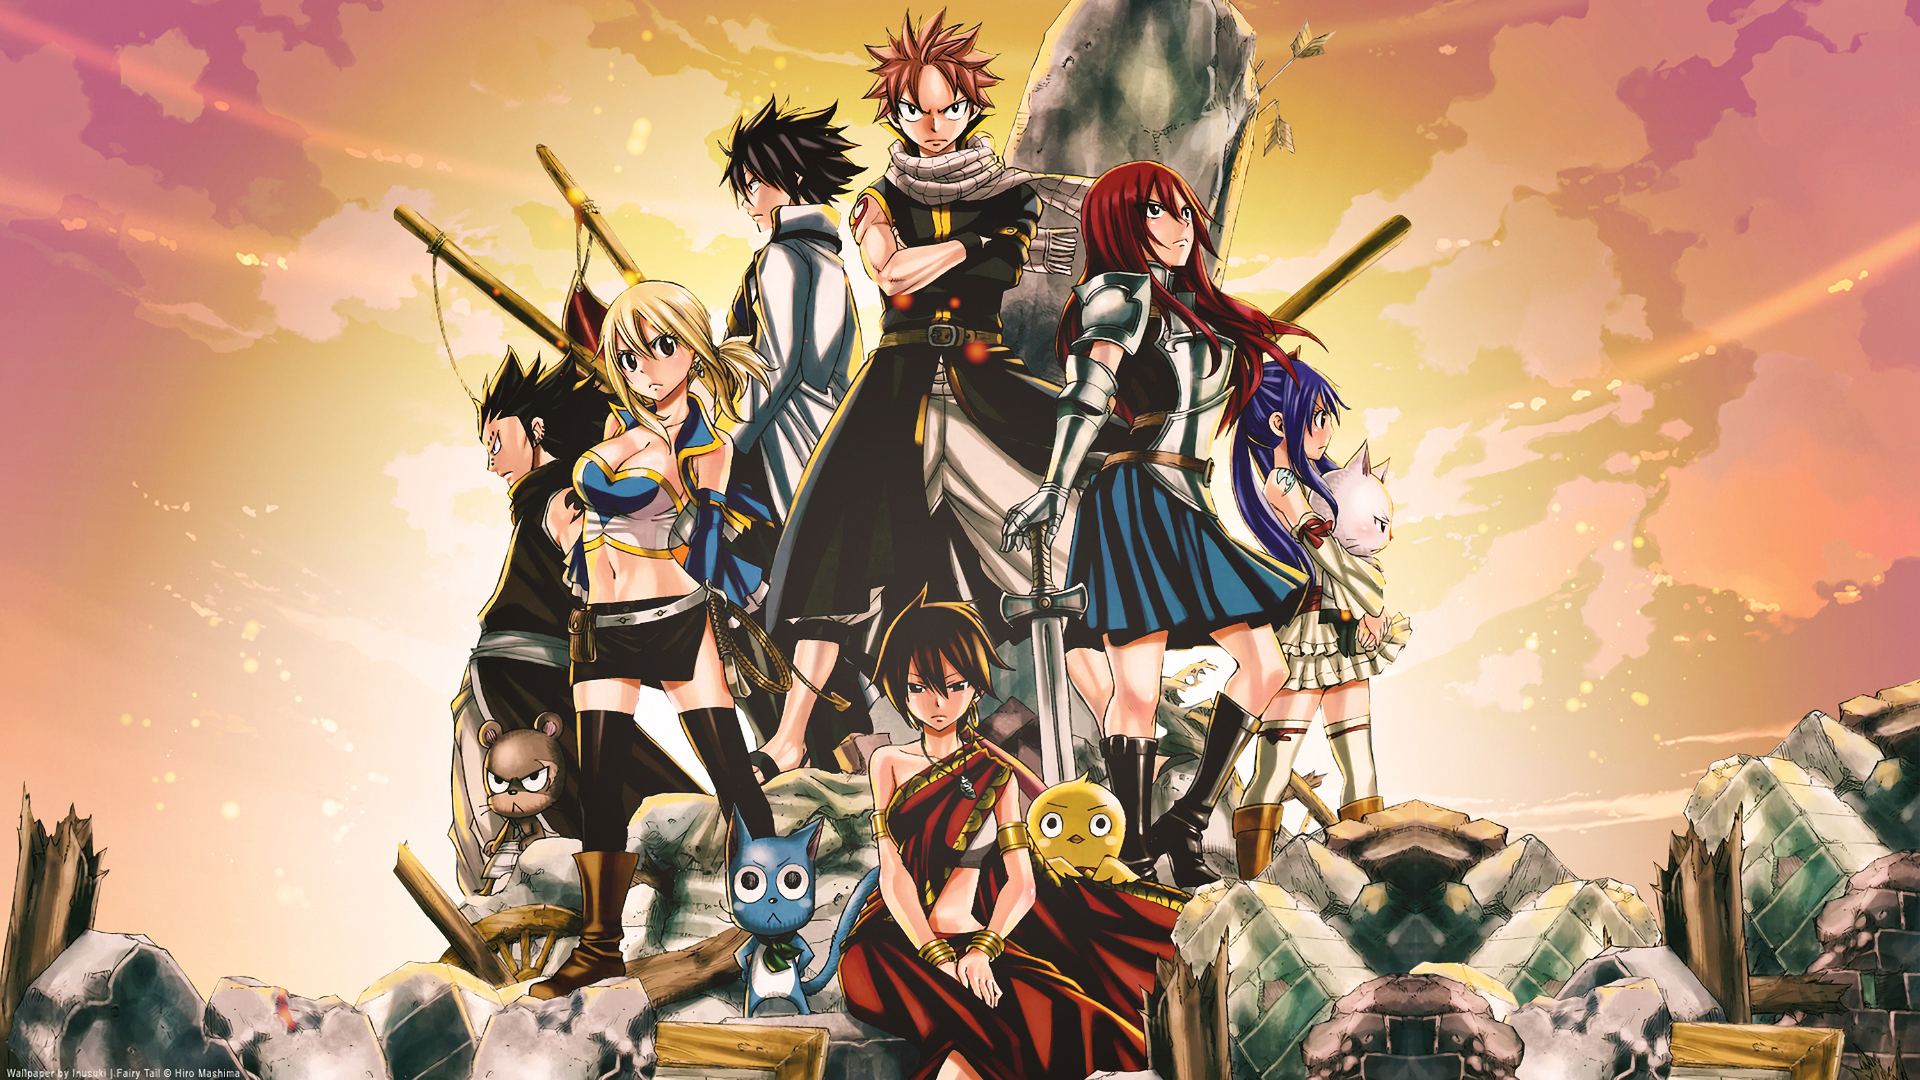 Yeagar Fairy Tail Wallpapers